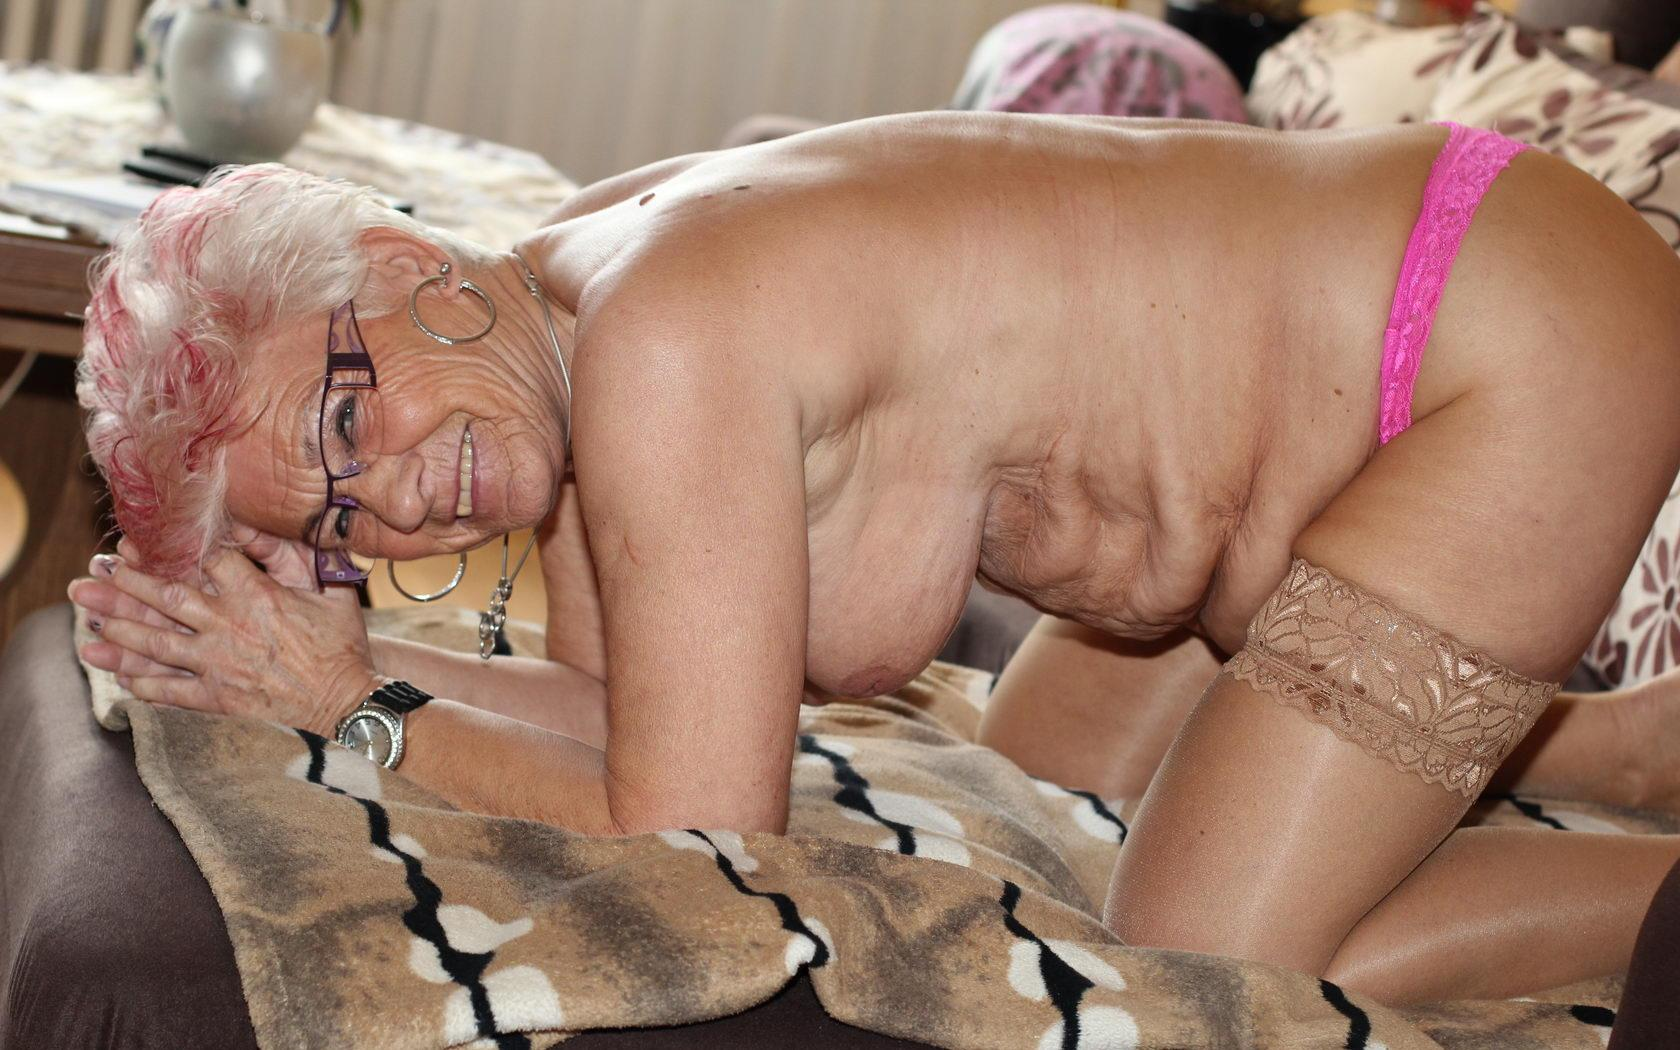 Upskirt Granny Nice Pussy View 1